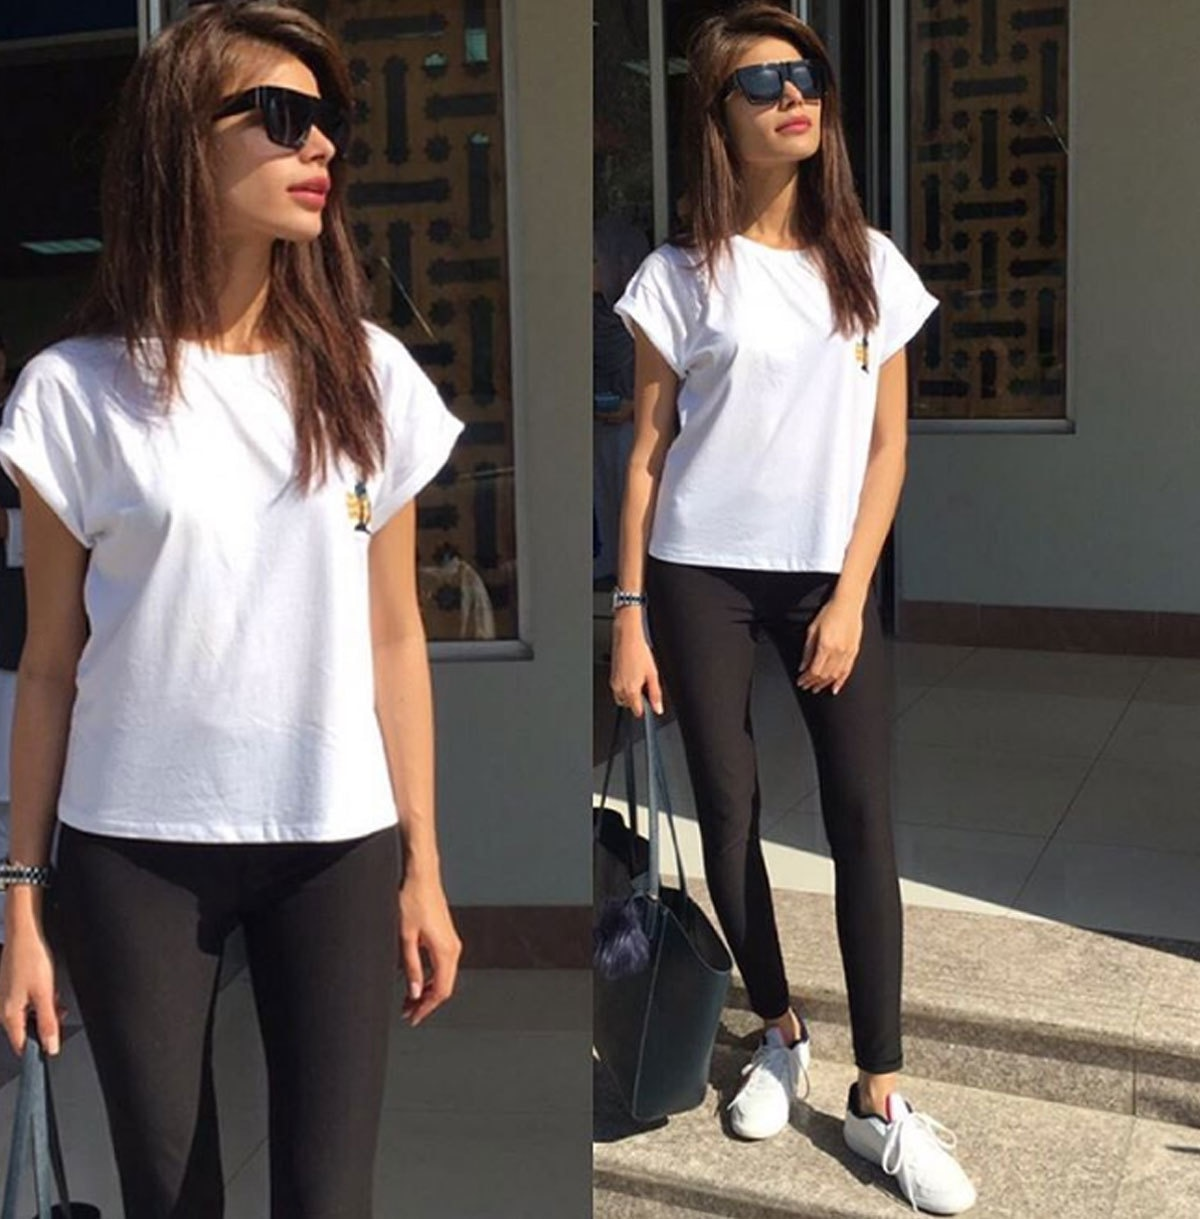 Sadaf Kanwal in white sneaks and shirt, ready to go anywhere